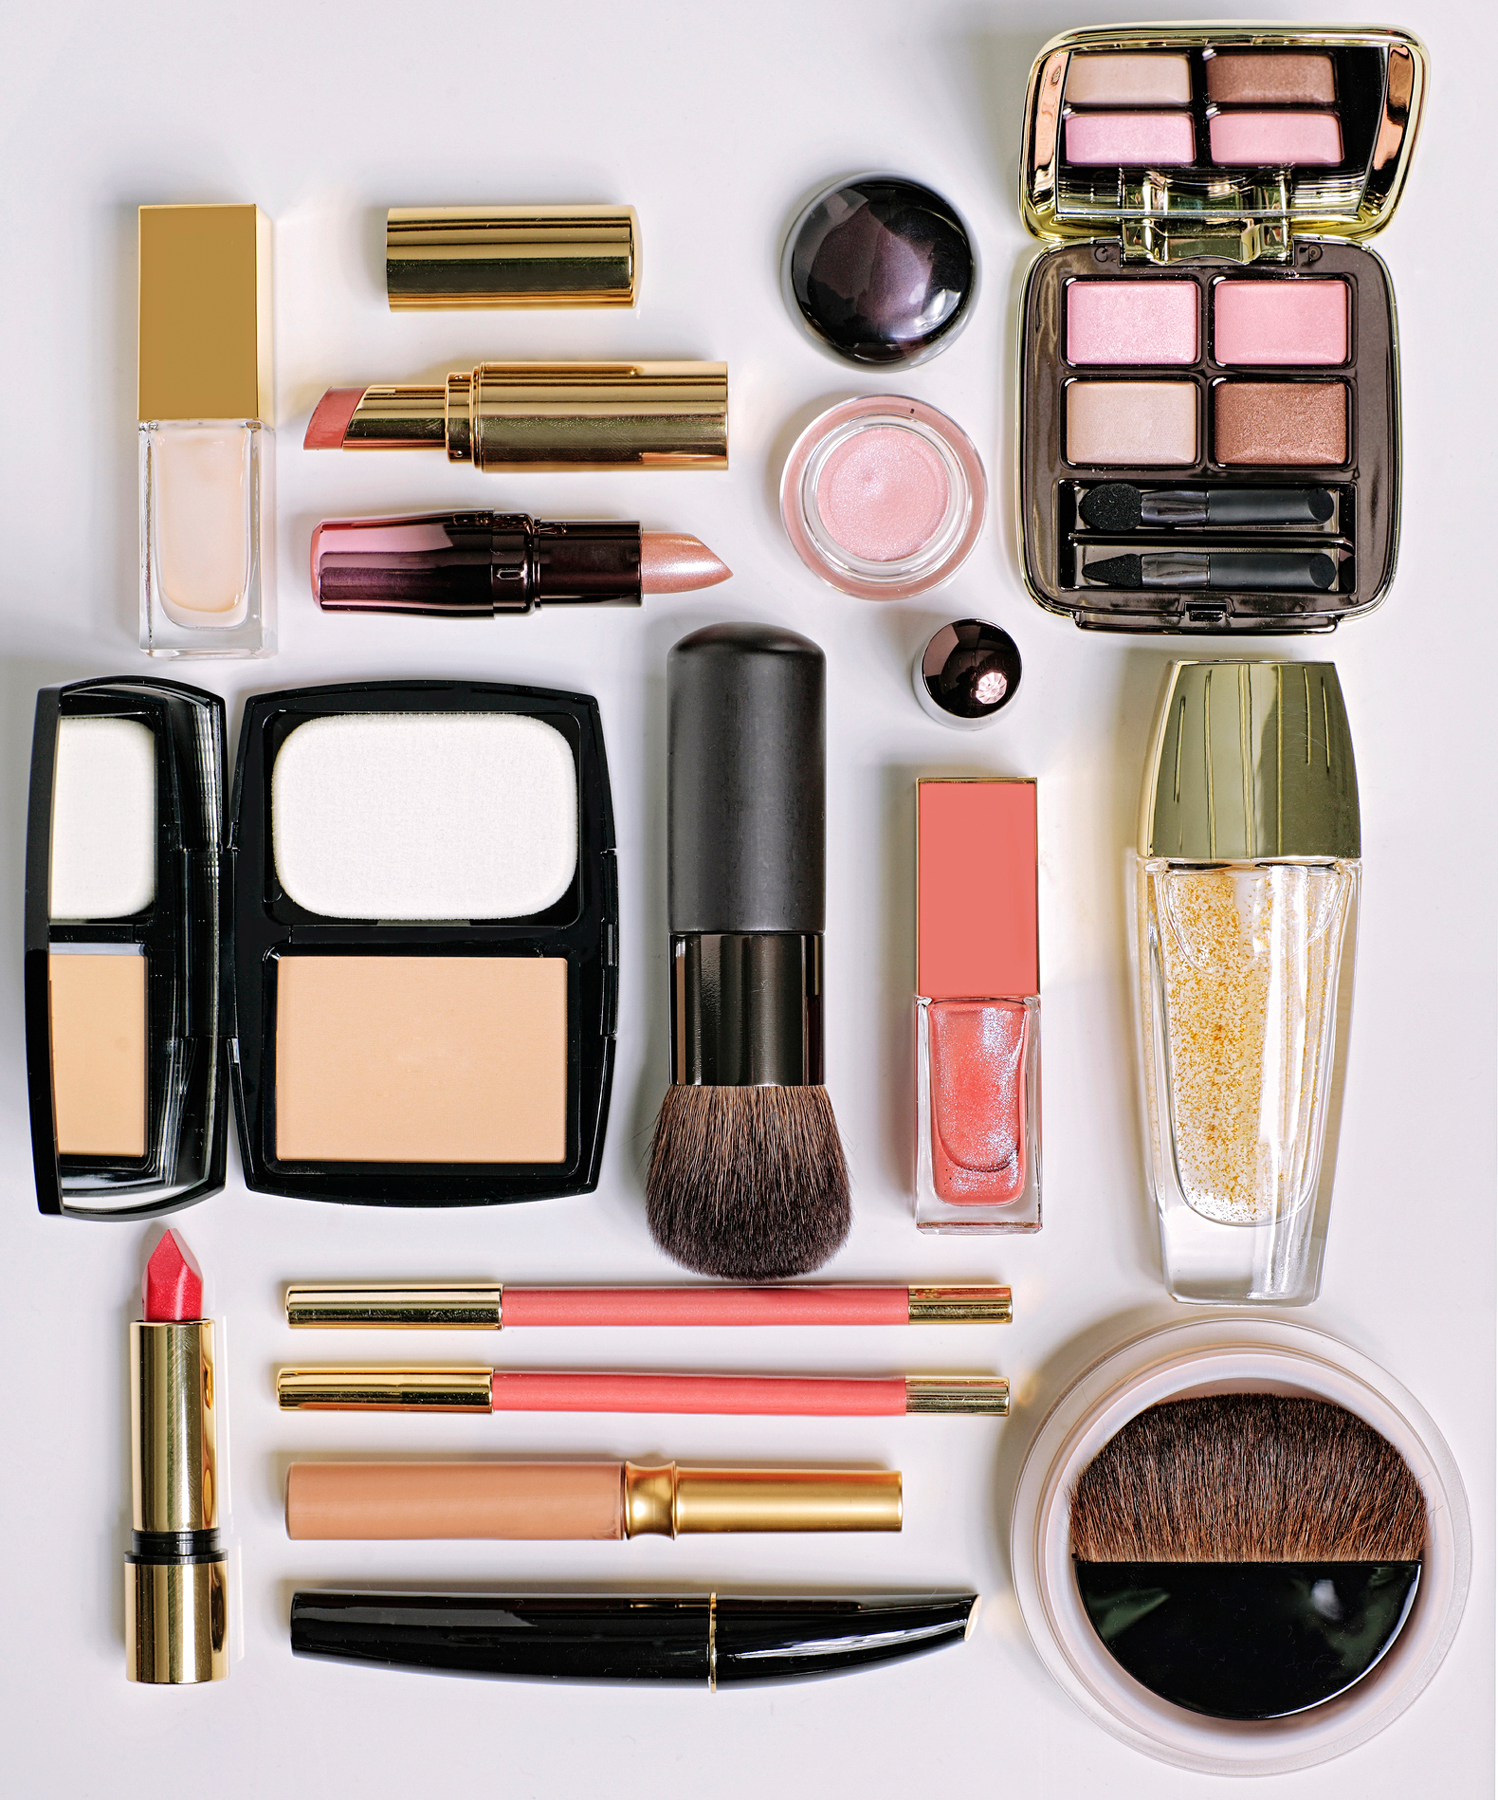 Beauty Products: How To Organize Your Beauty Products